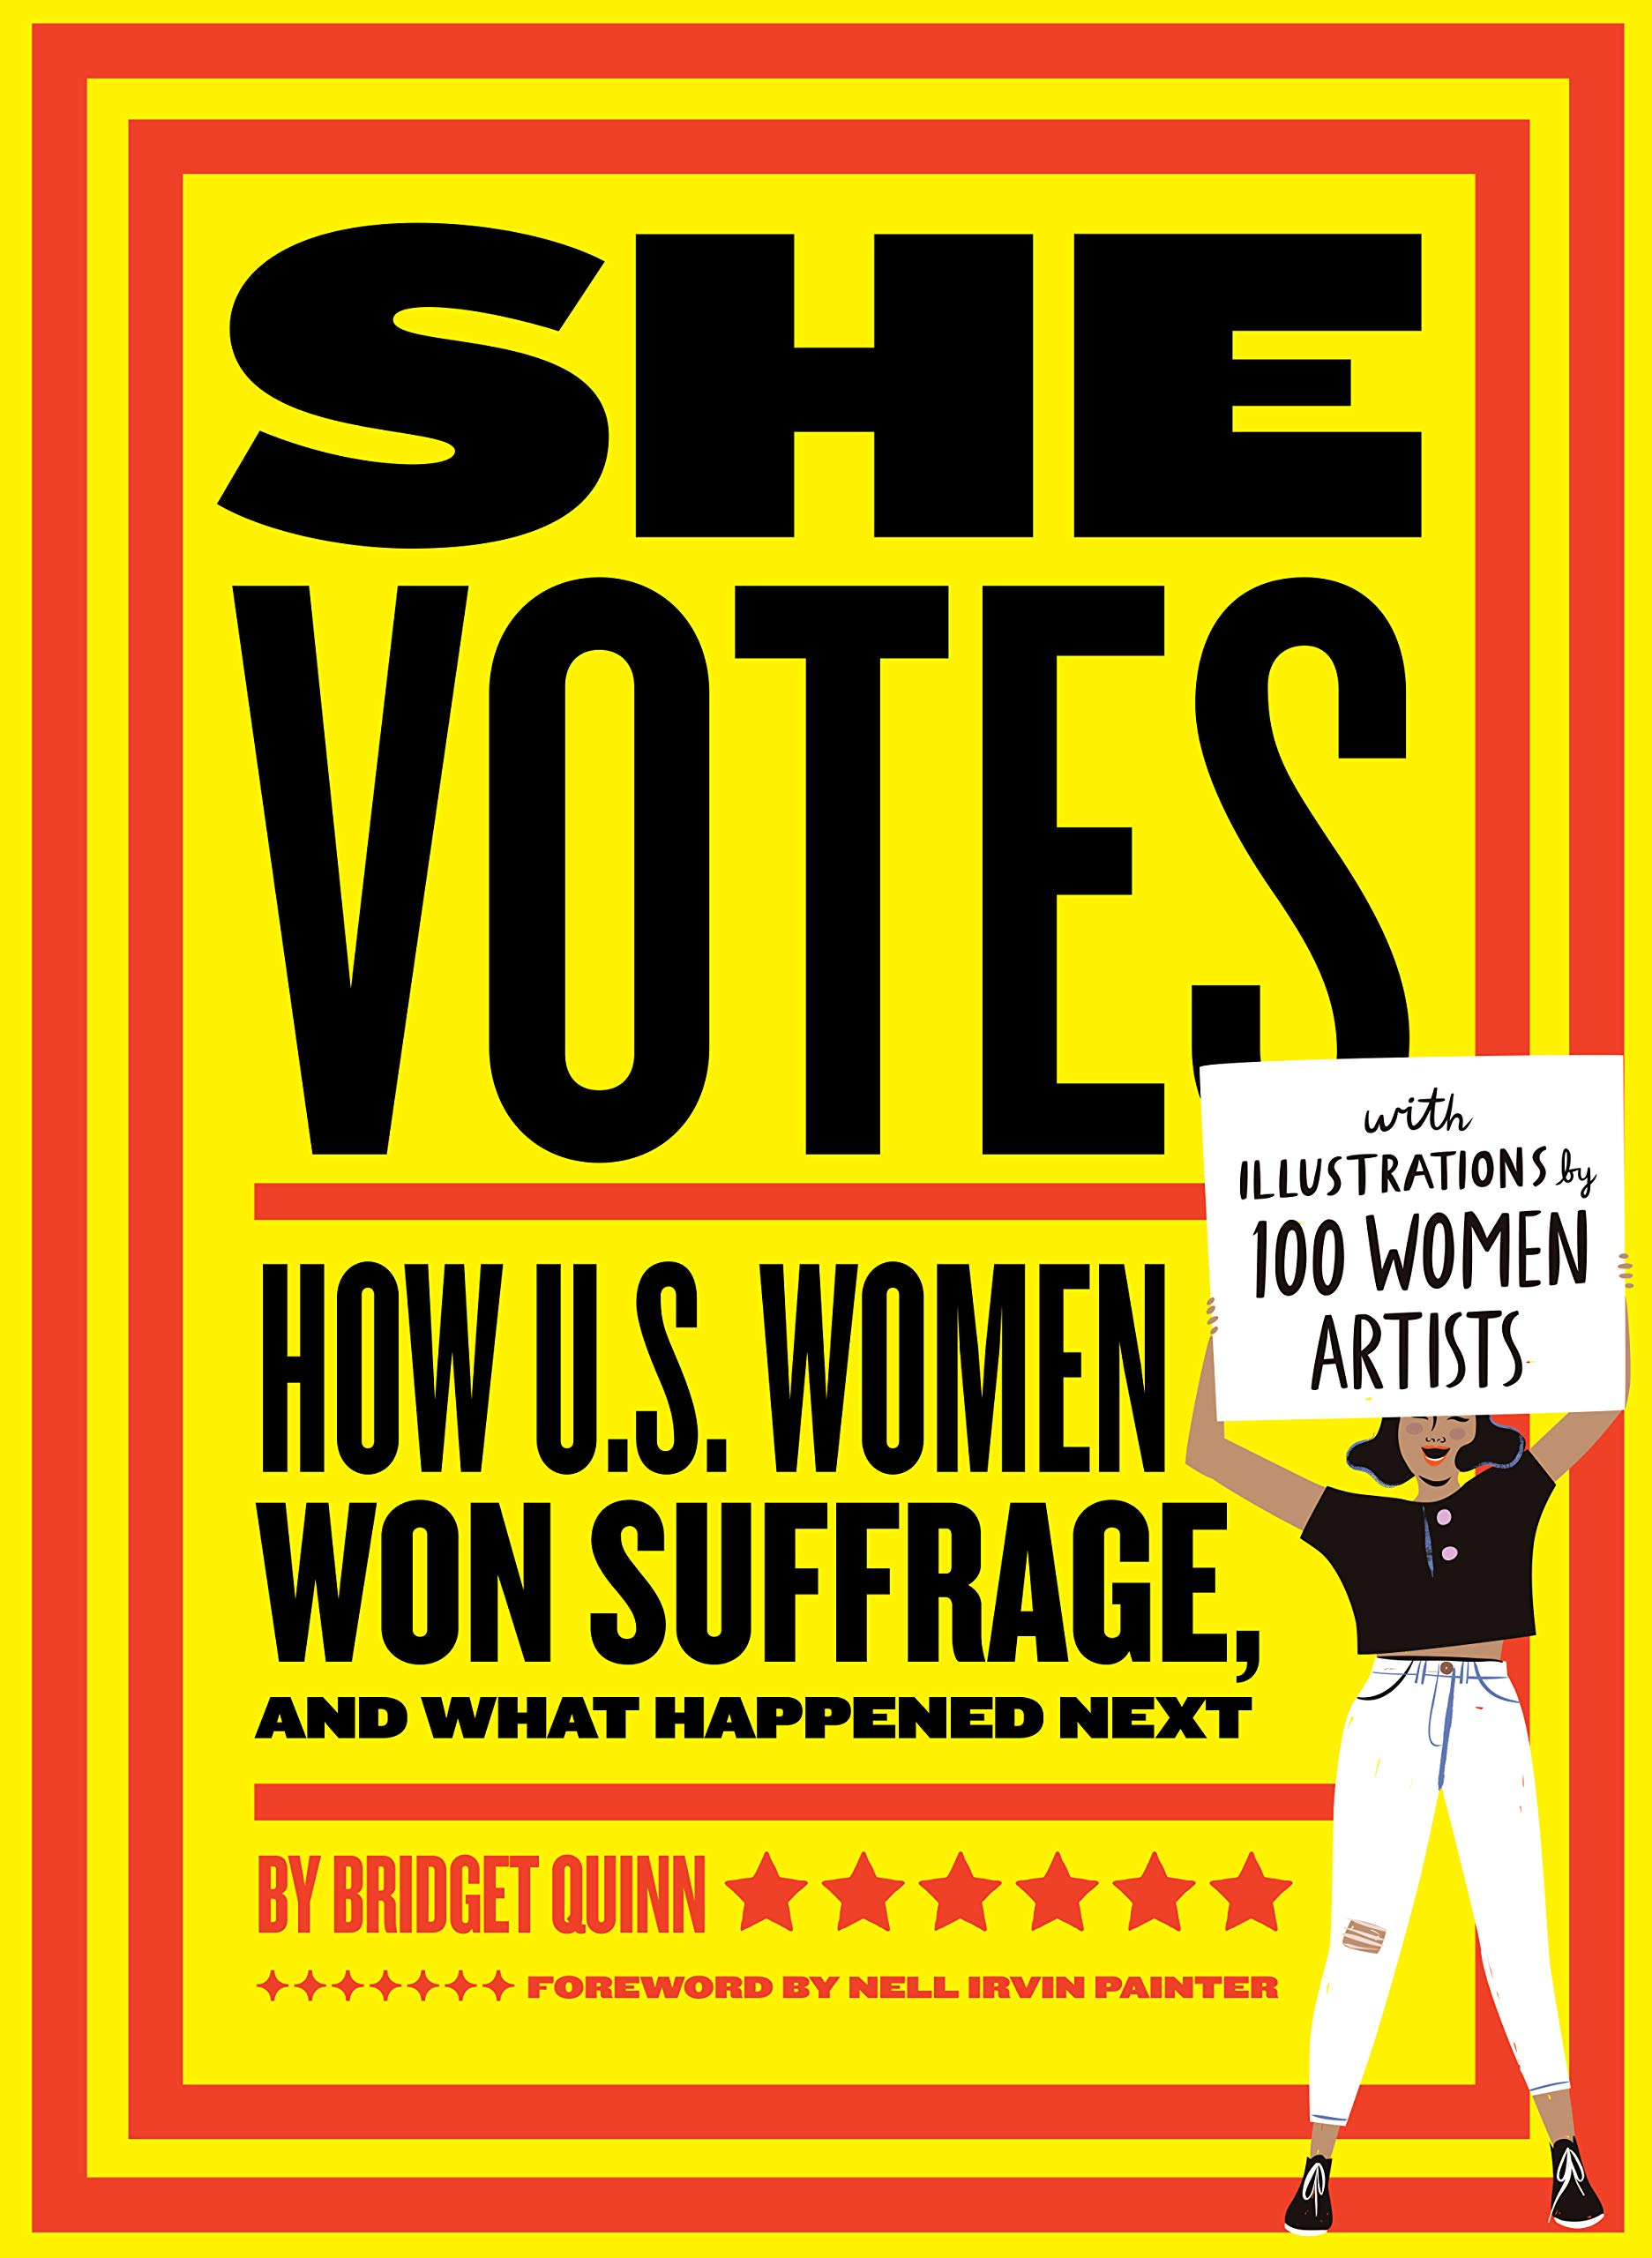 She Votes: How U.S. Women Won Suffrage, and What Happened Next: Quinn,  Bridget, Painter, Nell Irvin: 9781452173160: Amazon.com: Books